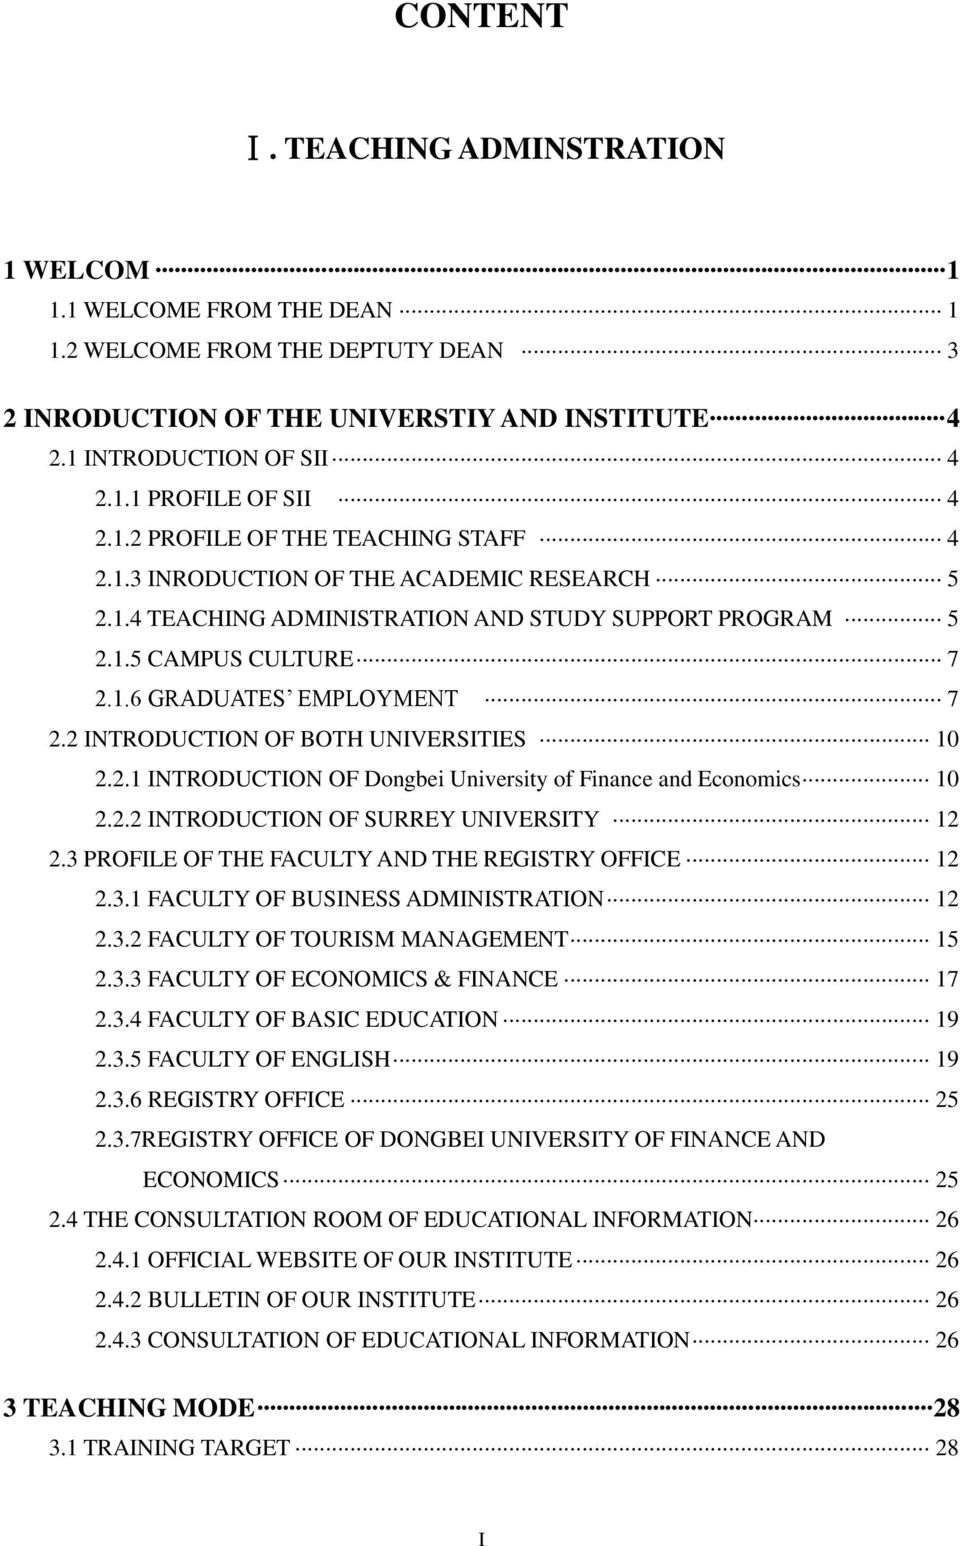 2 INTRODUCTION OF BOTH UNIVERSITIES 10 2.2.1 INTRODUCTION OF Dongbei University of Finance and Economics 10 2.2.2 INTRODUCTION OF SURREY UNIVERSITY 12 2.